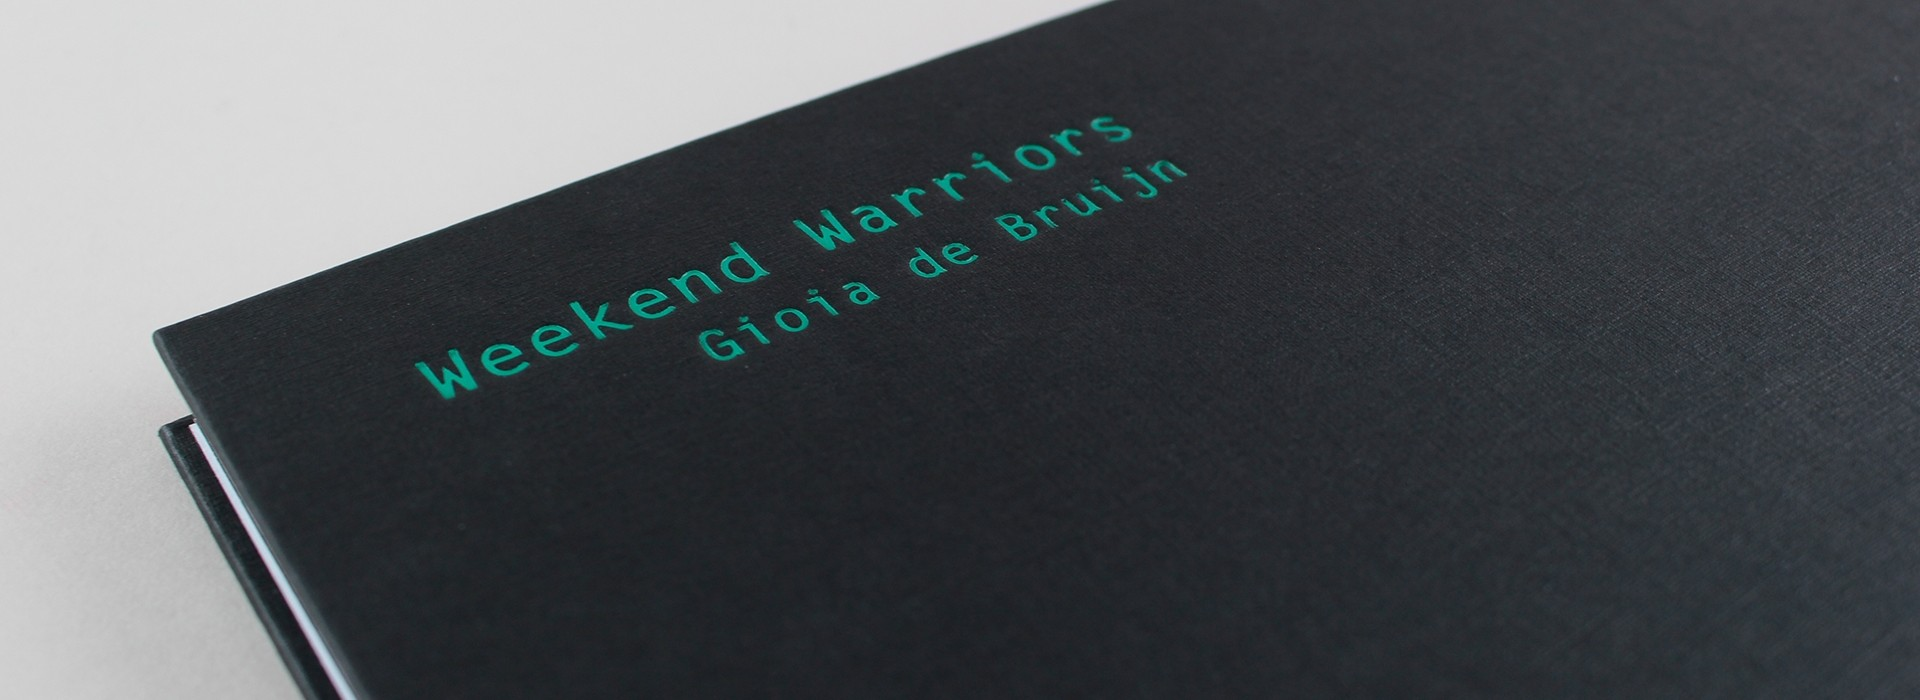 Gioia de Bruijn Weekend Warriors